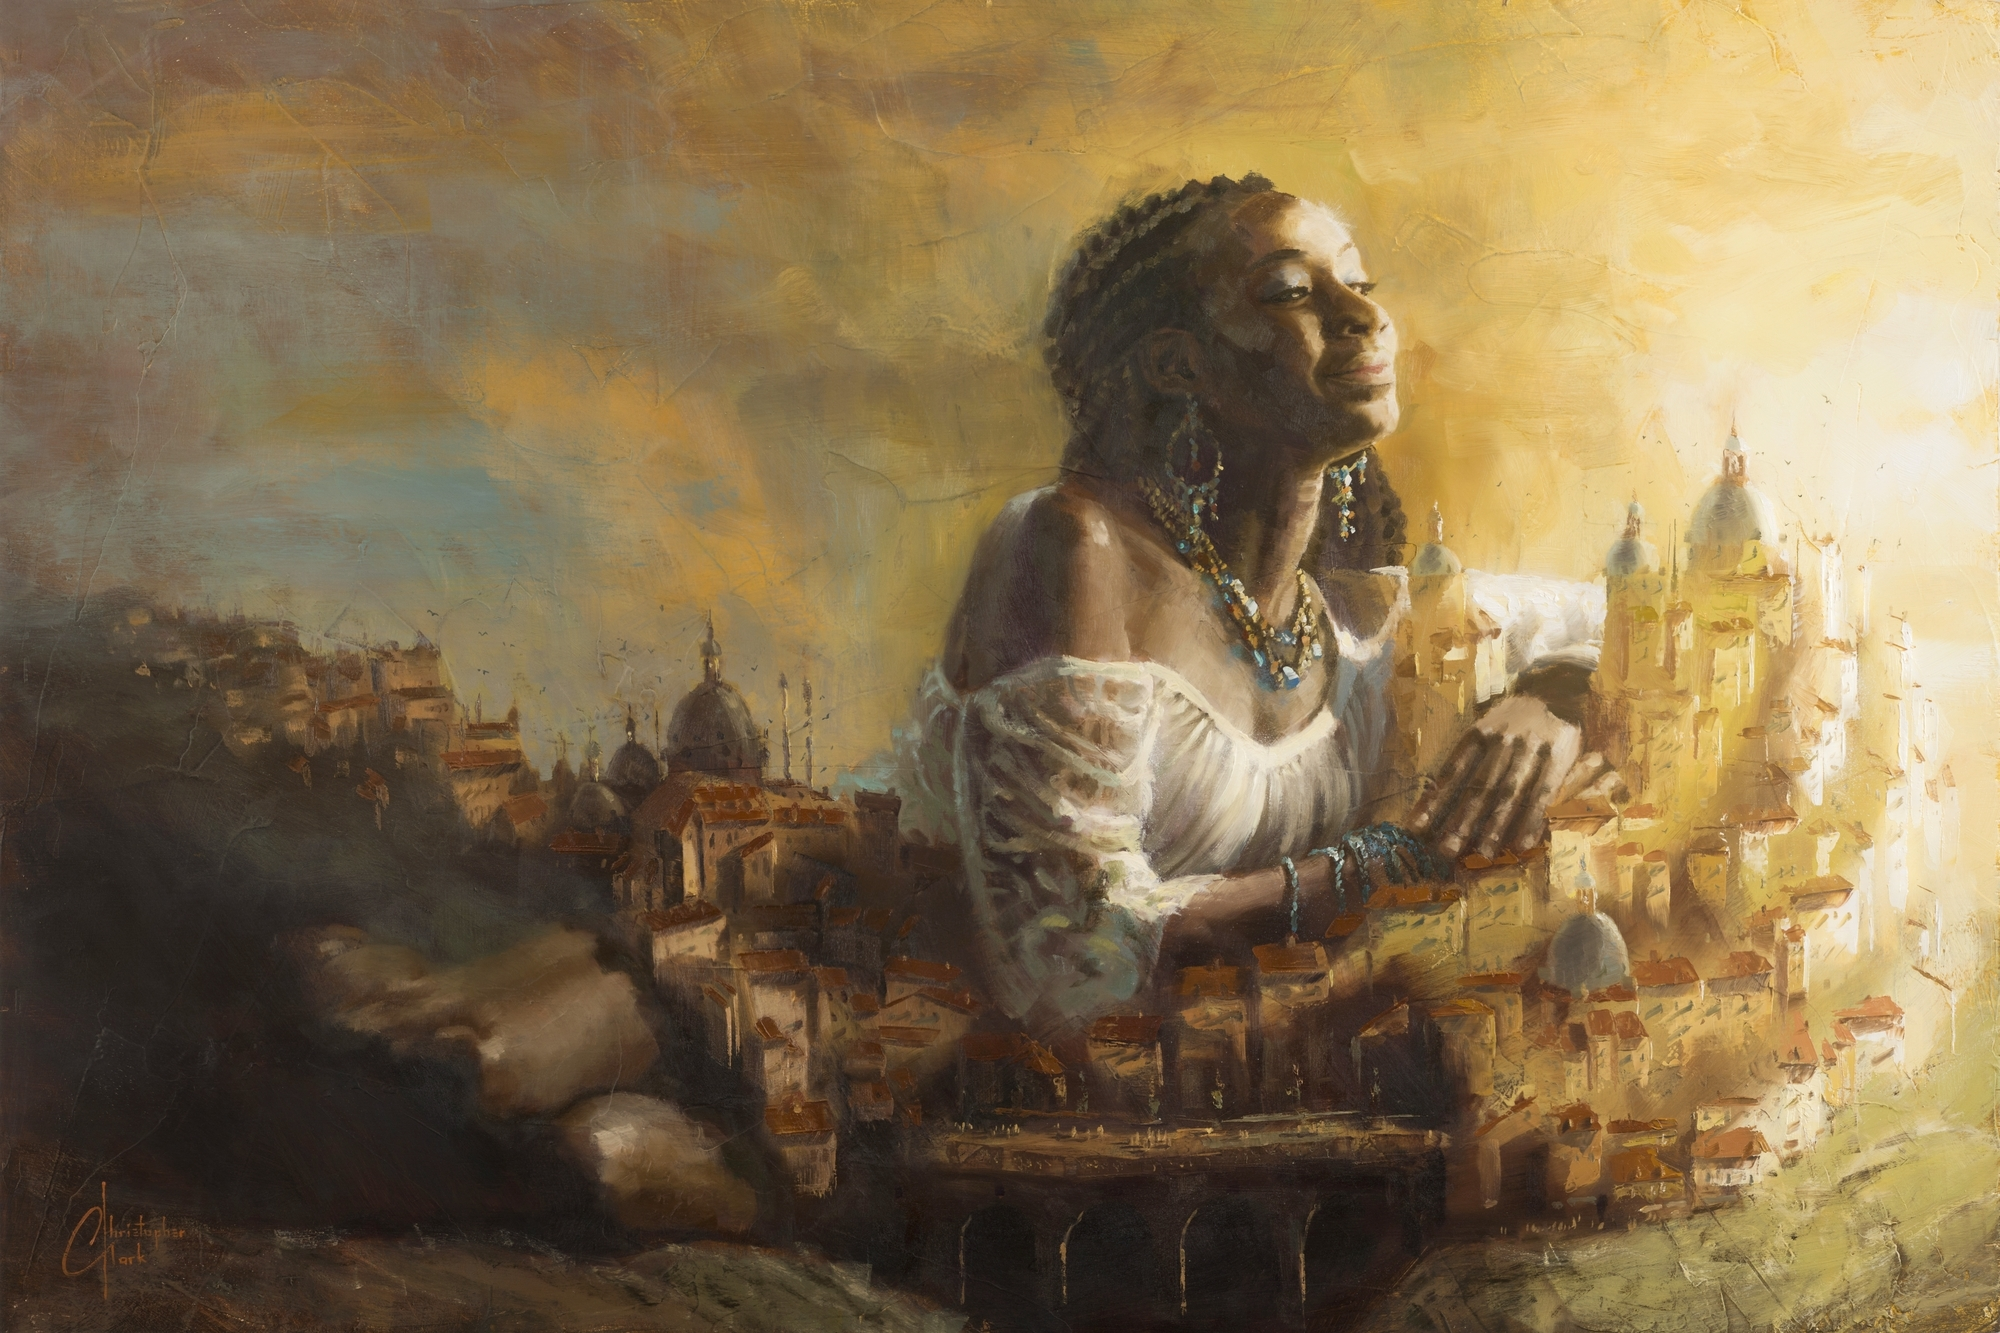 Cradle of Civilization by Christopher Clark